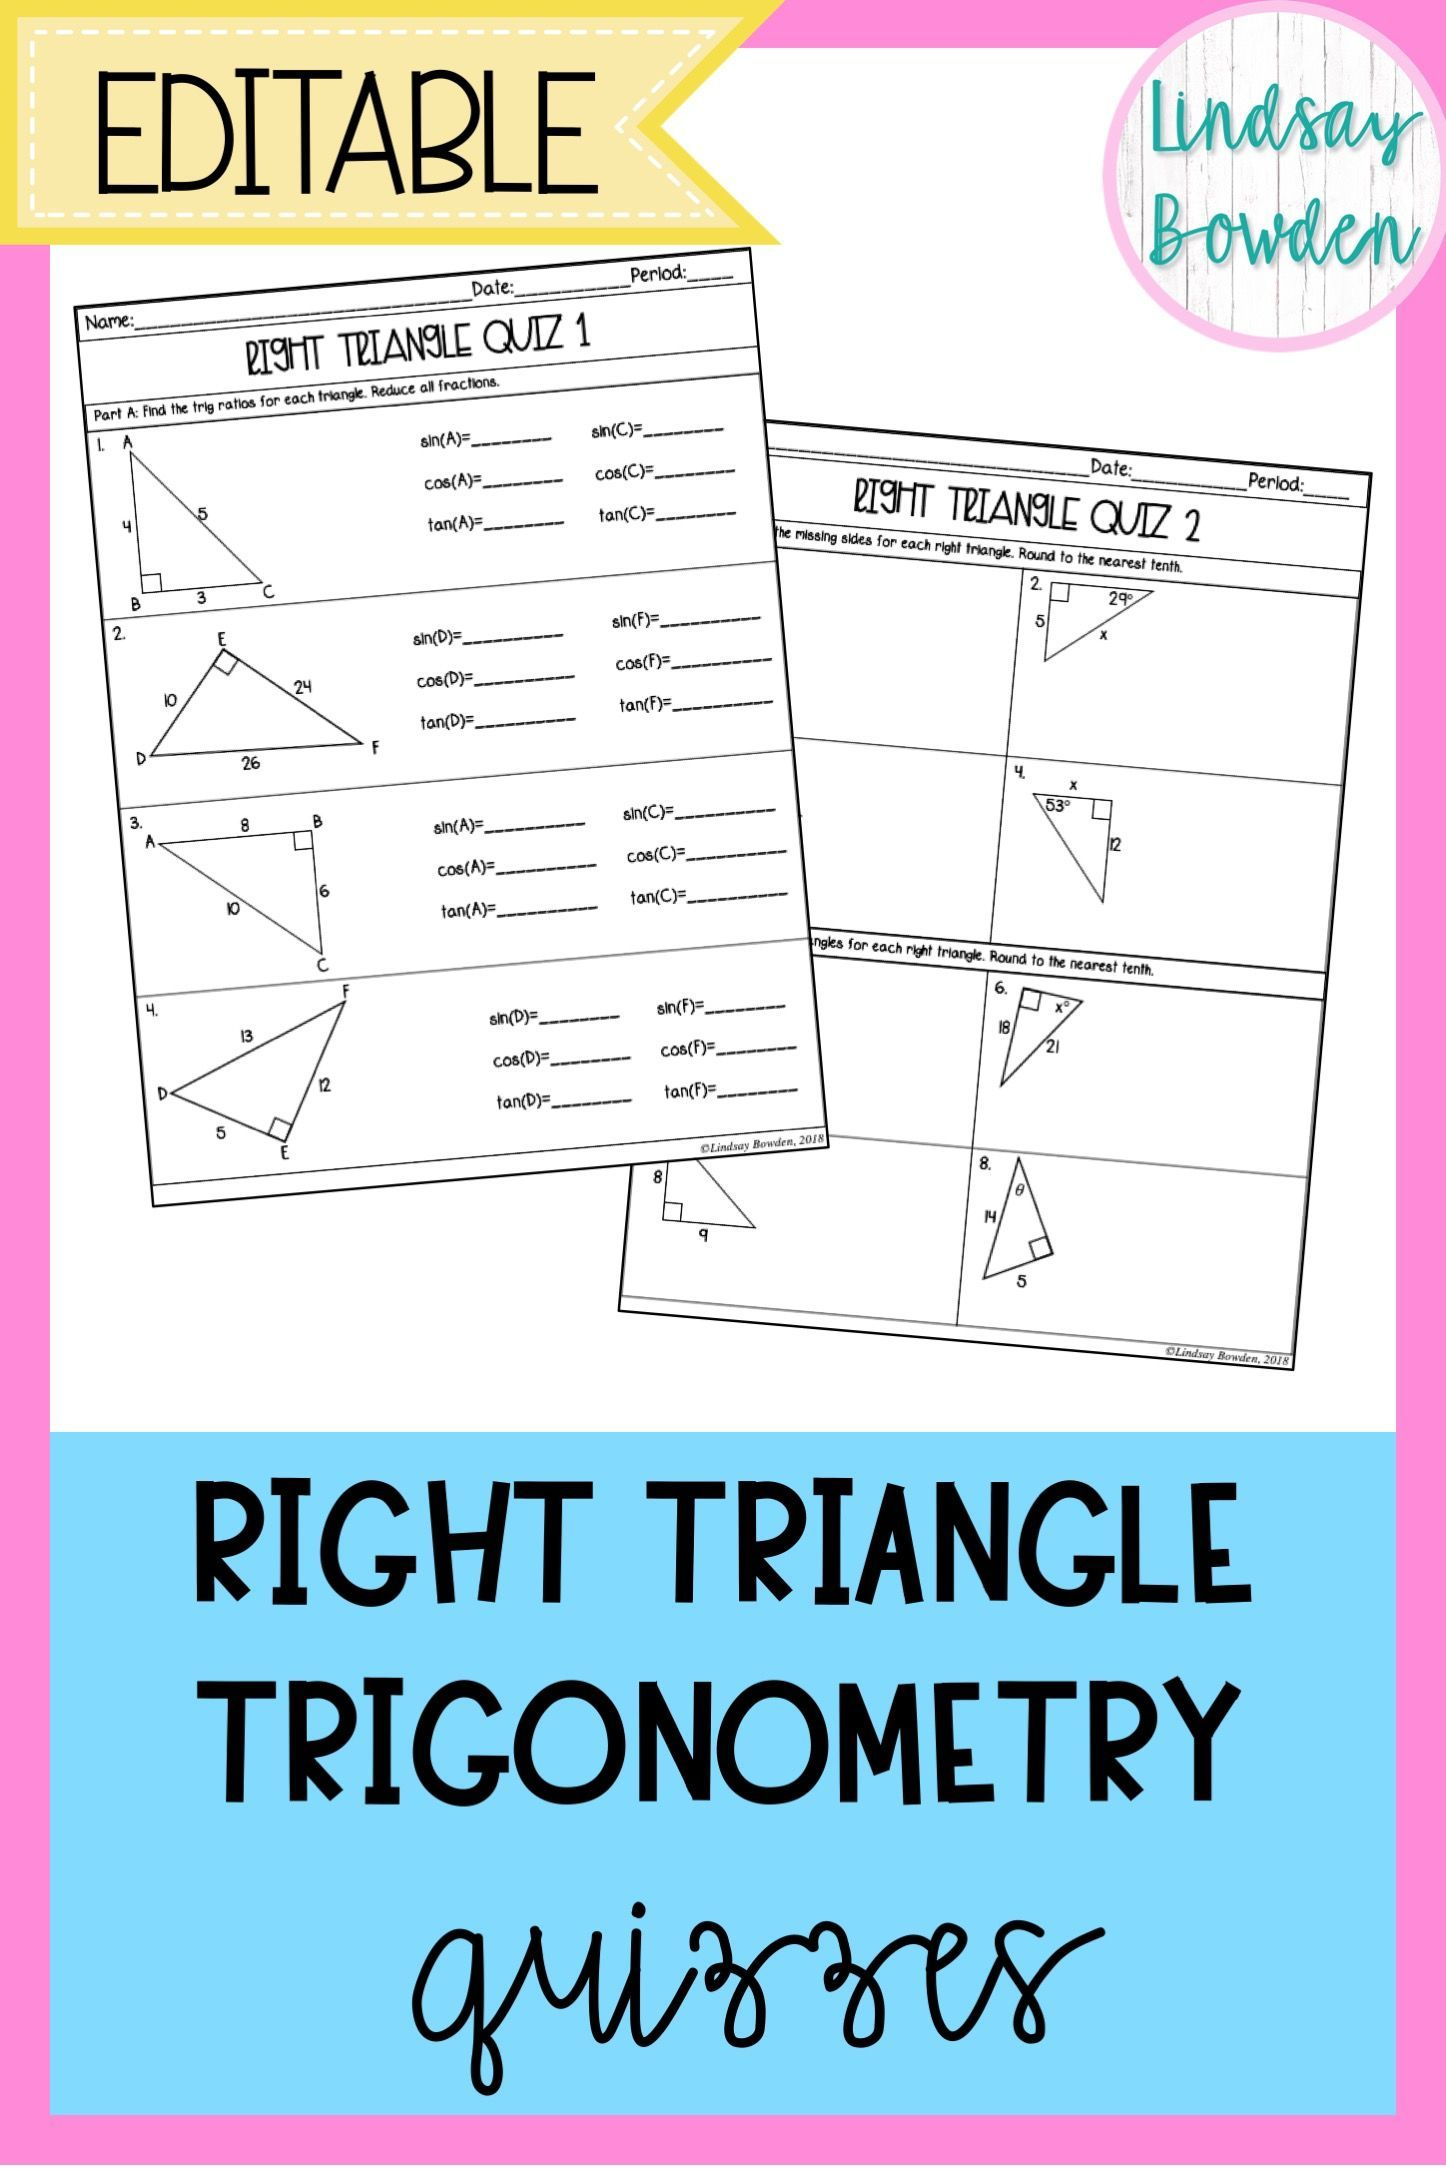 Right Triangle Trigonometry Quizzes